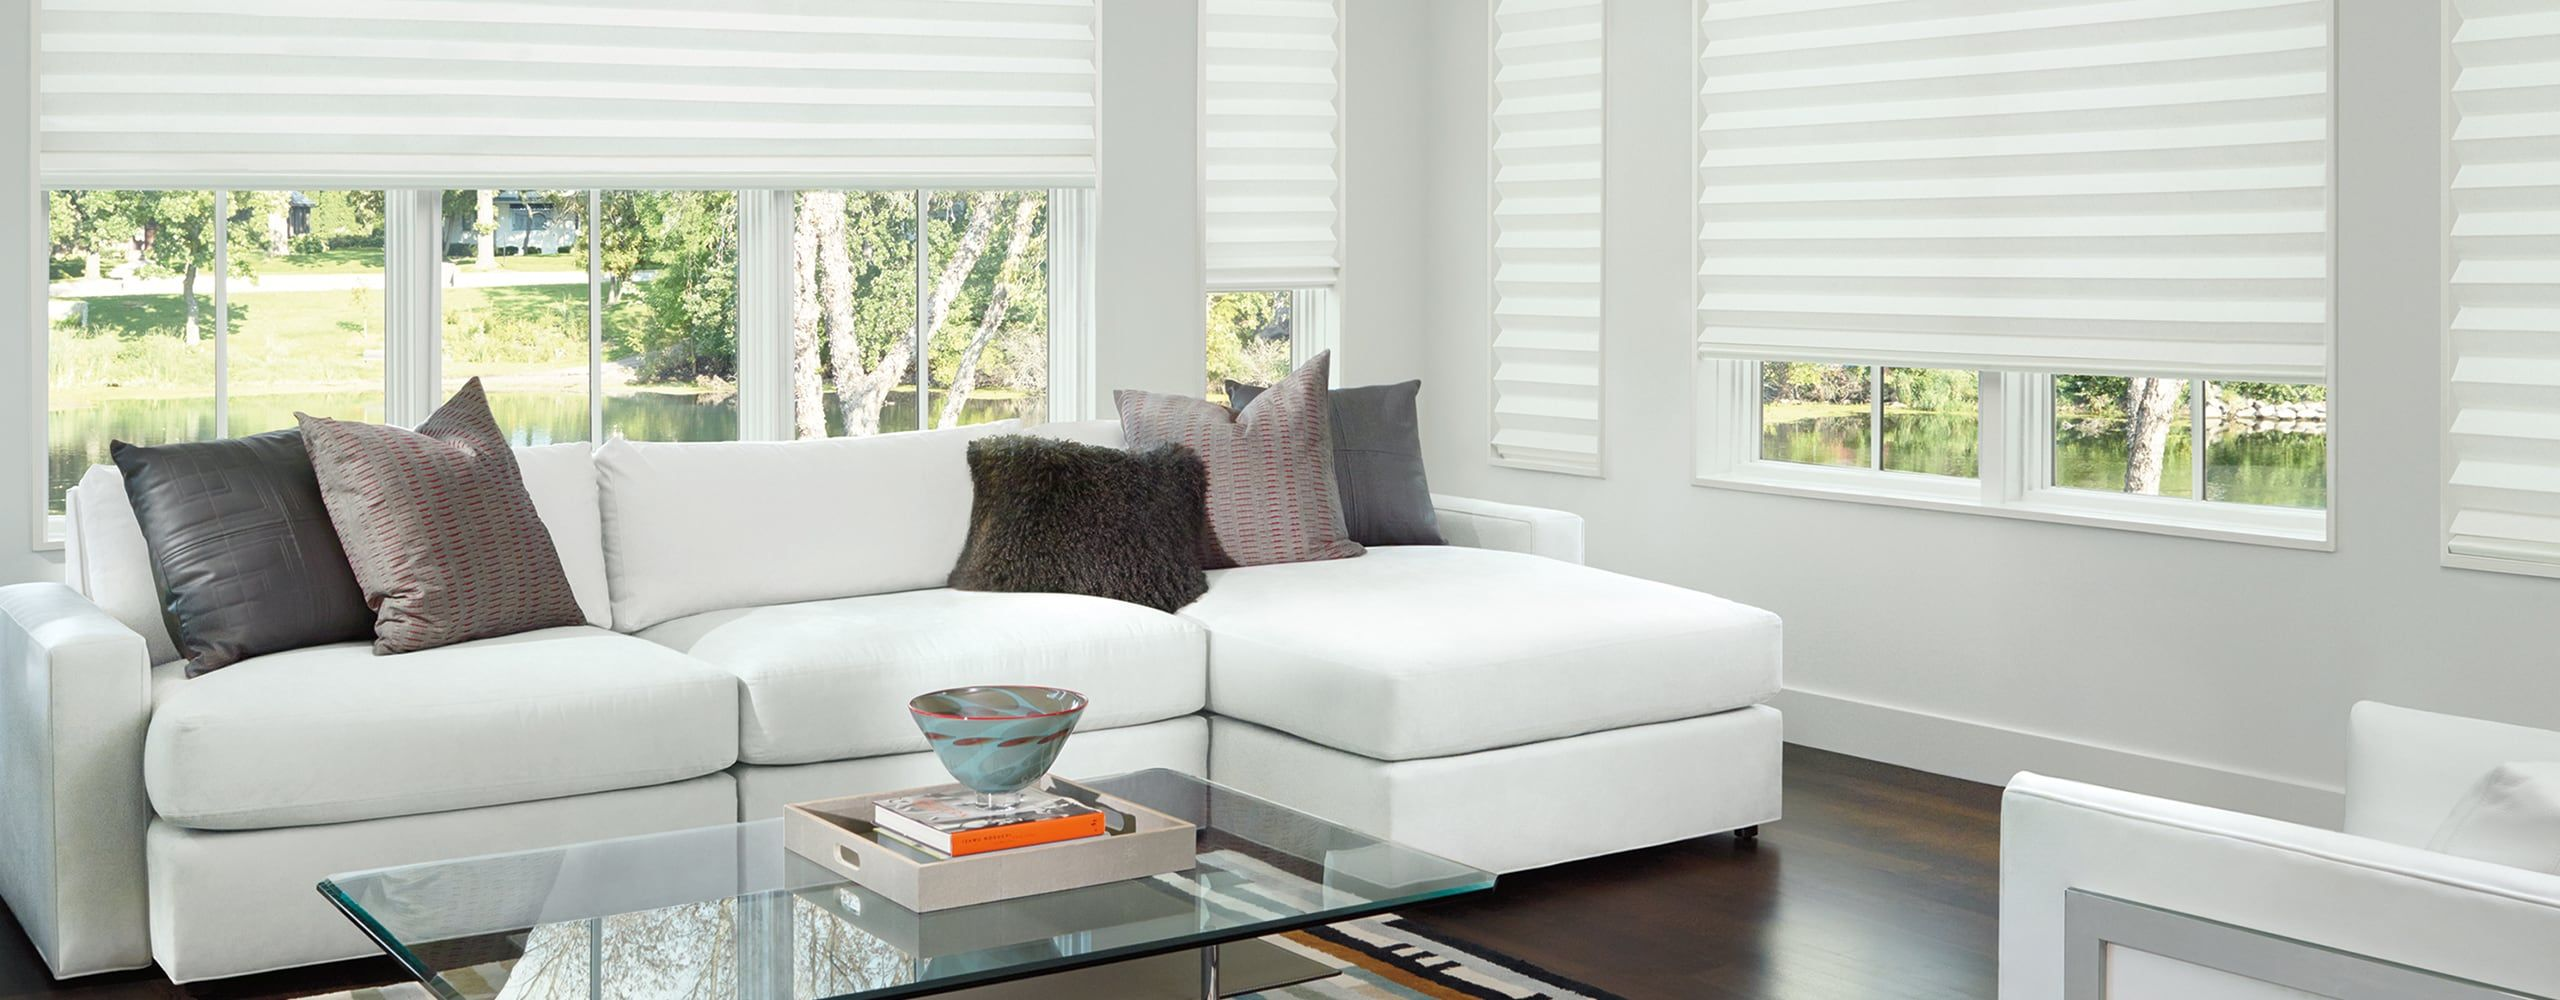 Yes window treatments like everything else these days are becoming